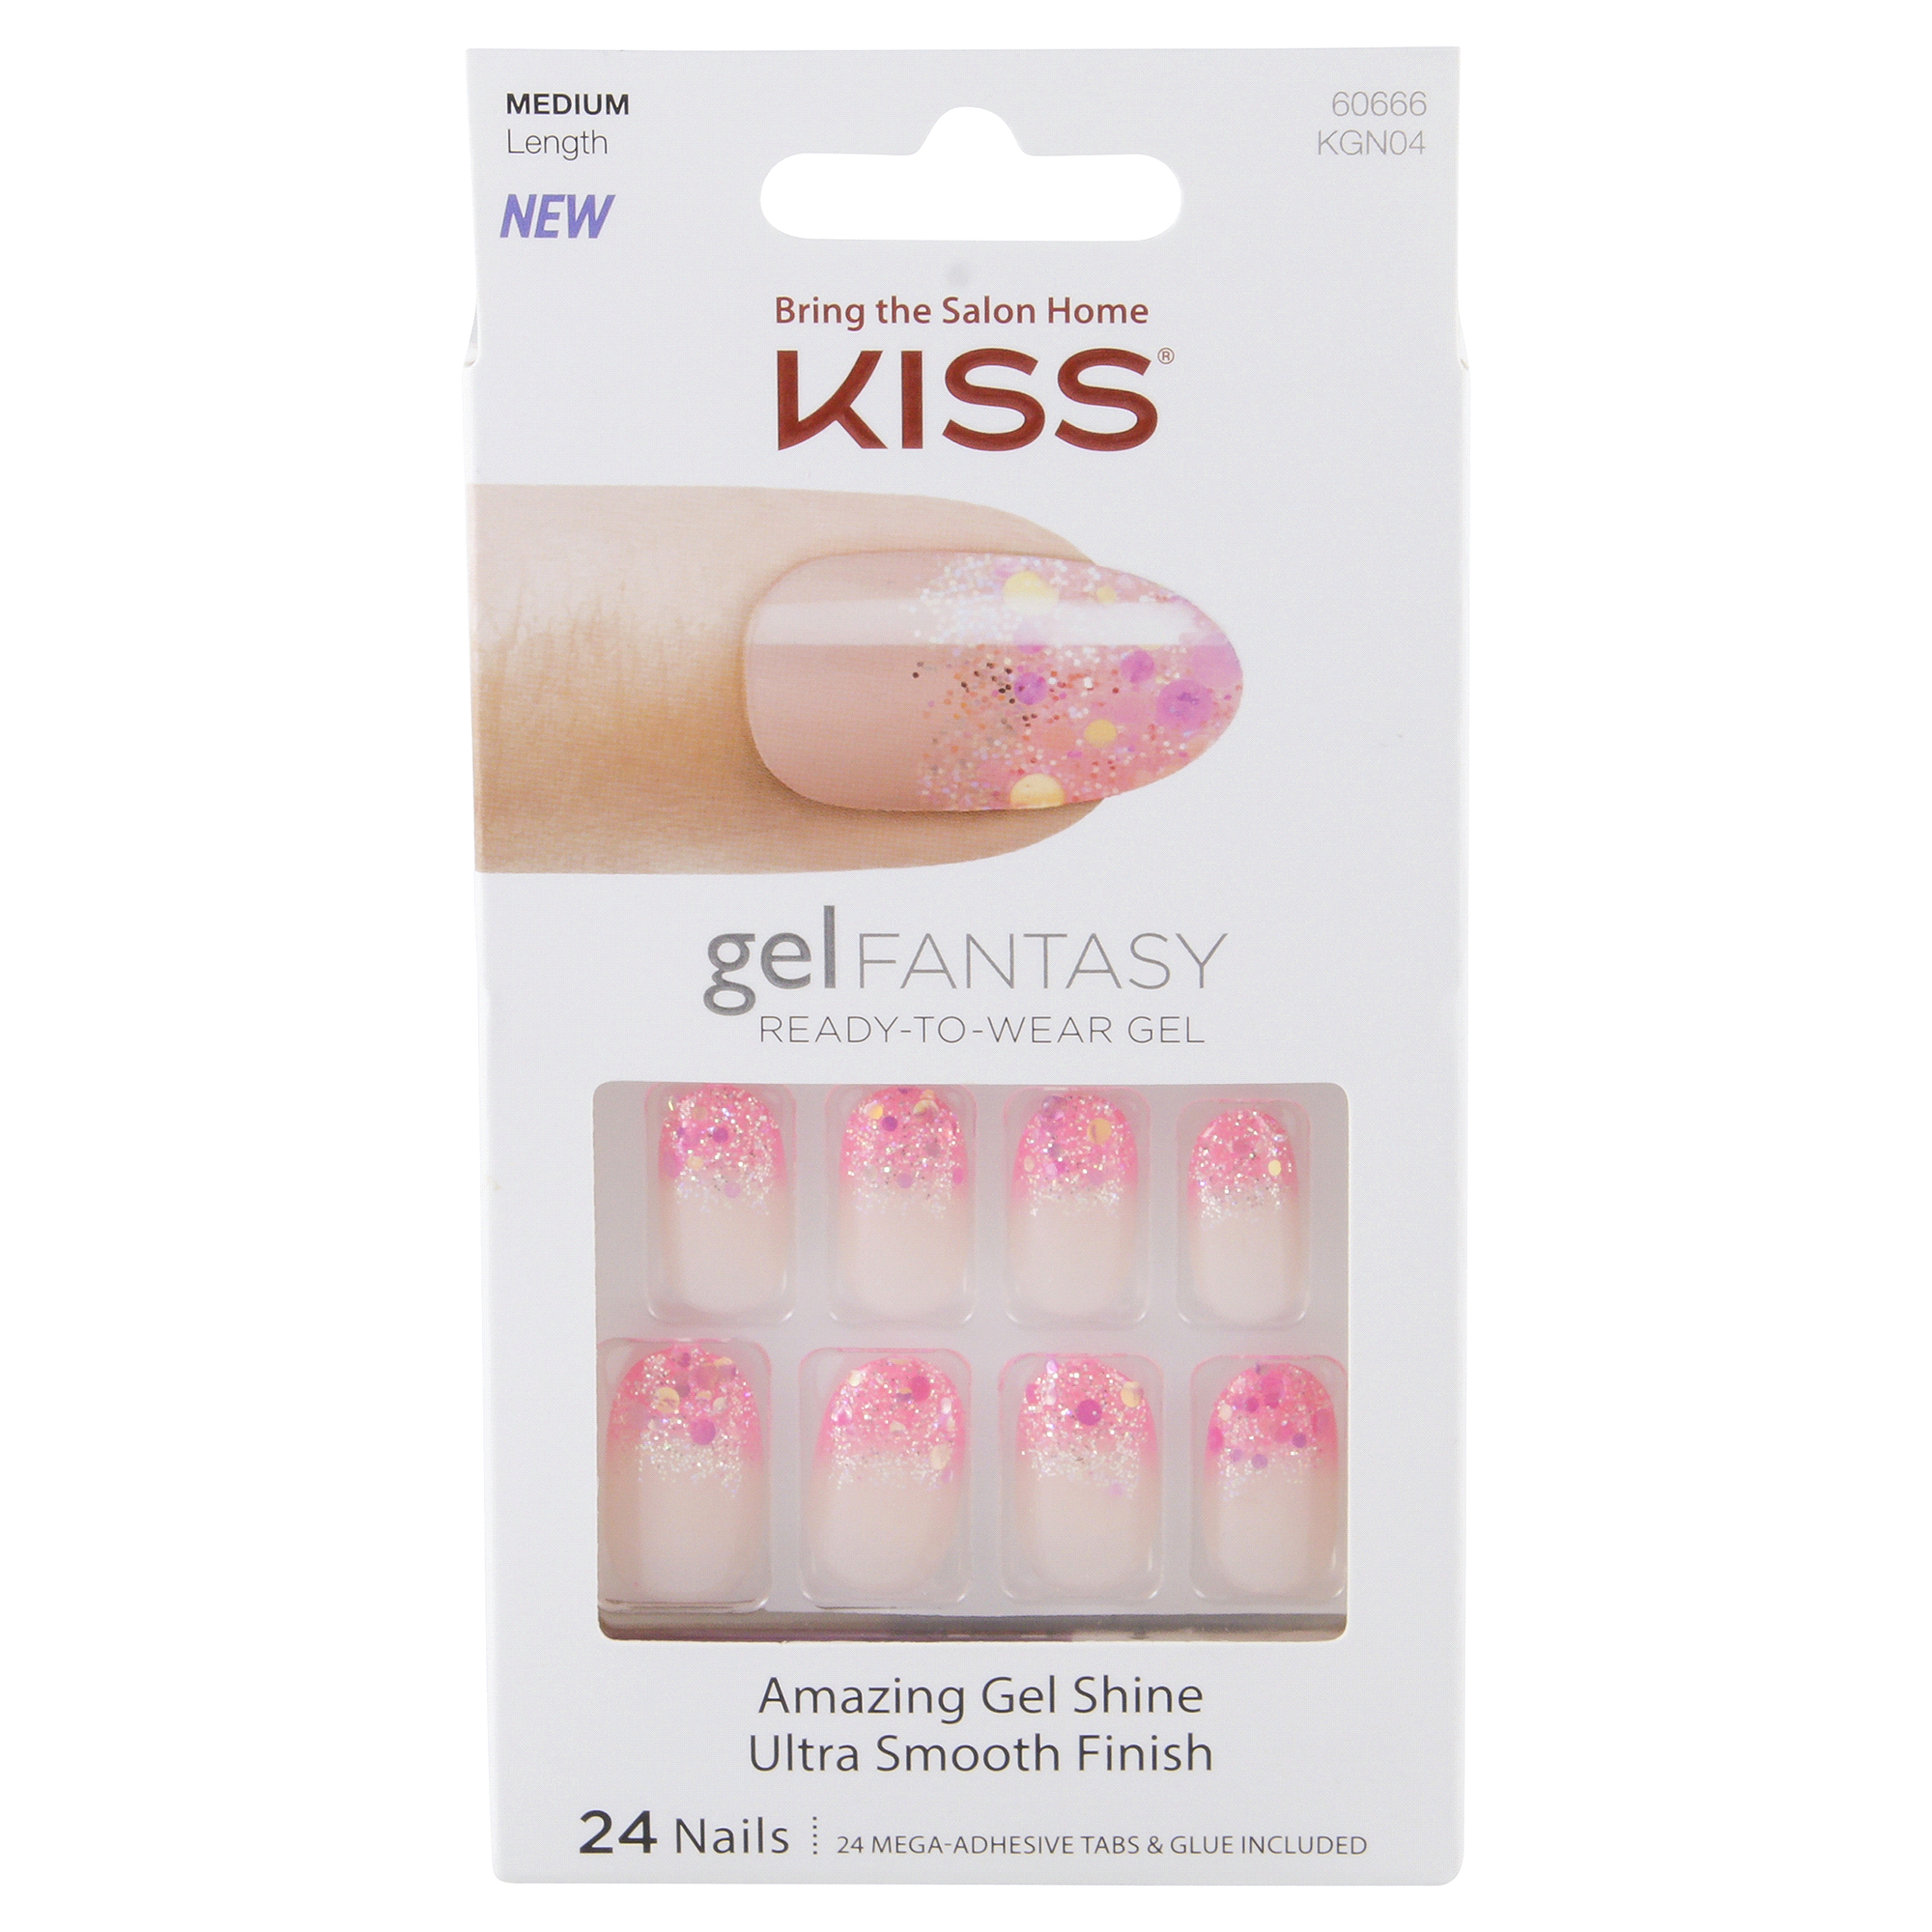 Kiss Gel Fantasy Ready-To-Wear Gel Nails 24 ct | Meijer.com